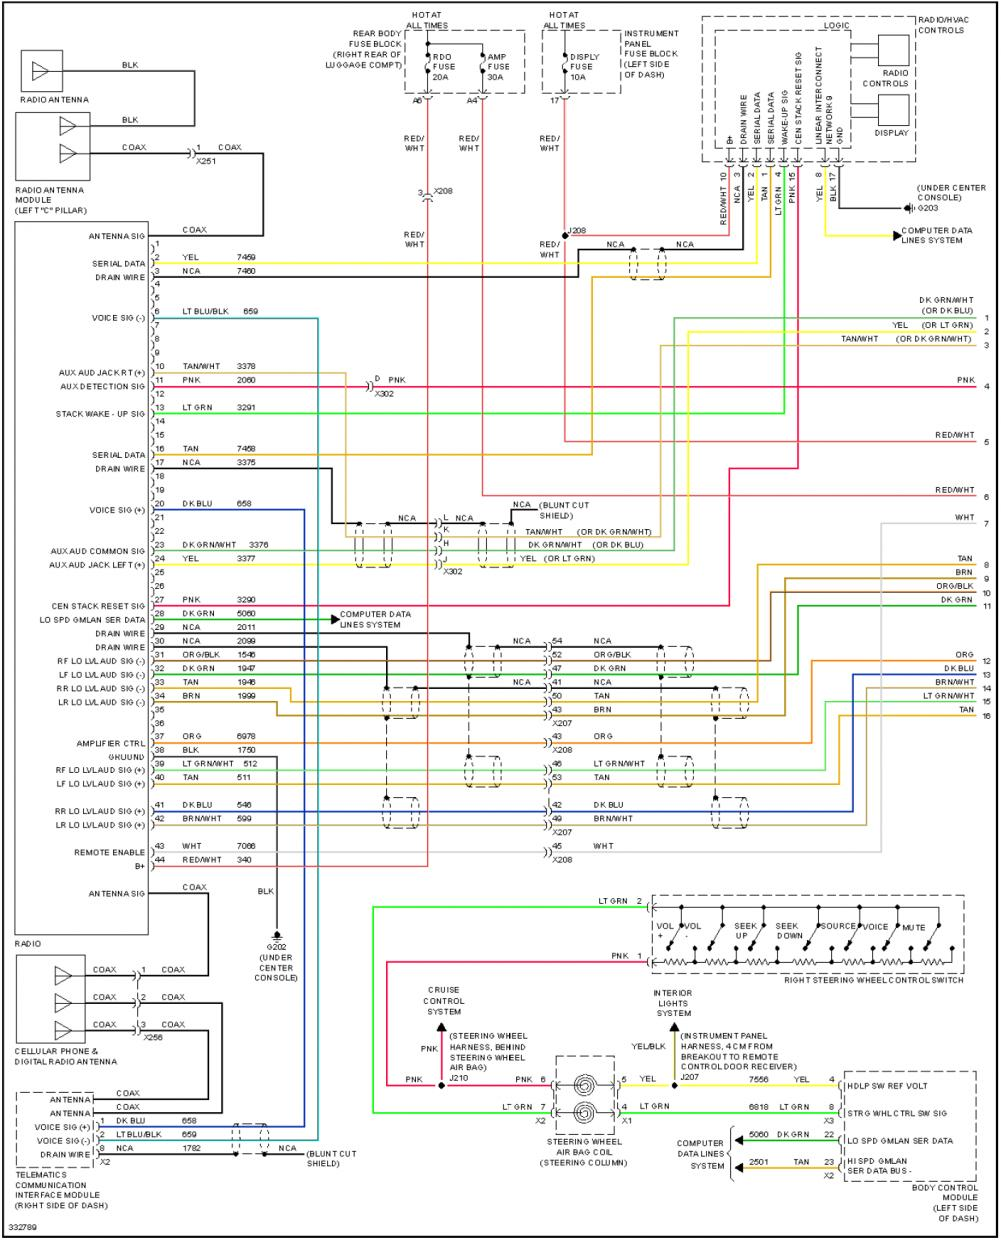 onstar microphone location  onstar  free engine image for 2004 GMC Sierra Wiring Diagram GMC Truck Electrical Wiring Diagrams